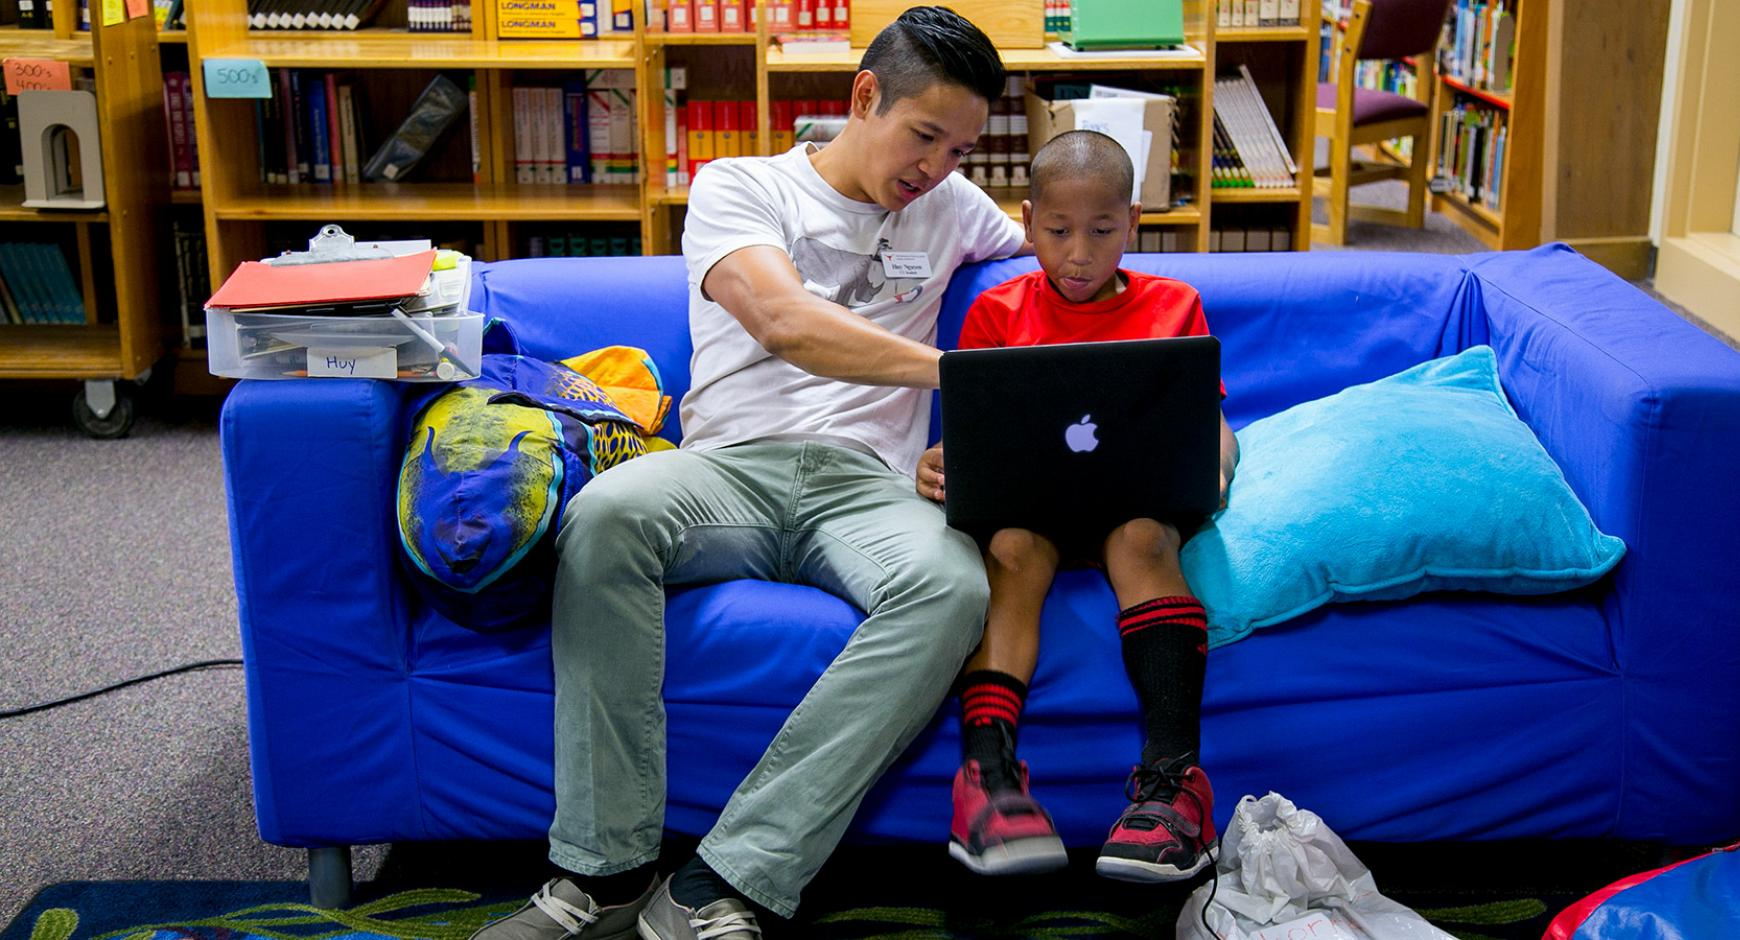 A young man shows a boy how to use a laptop.